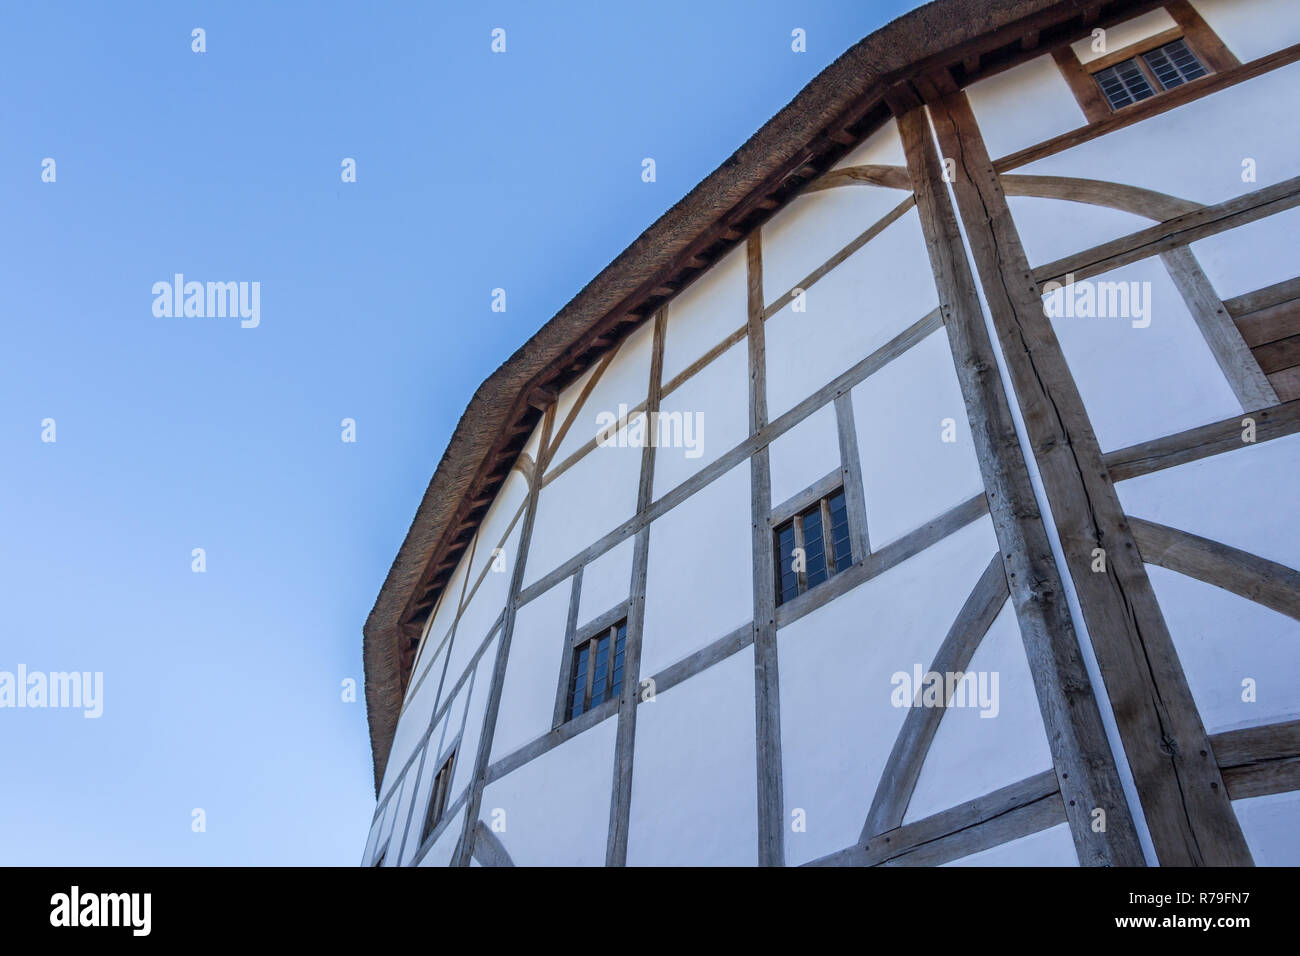 Globe Theater in London, United Kingdom - Stock Image